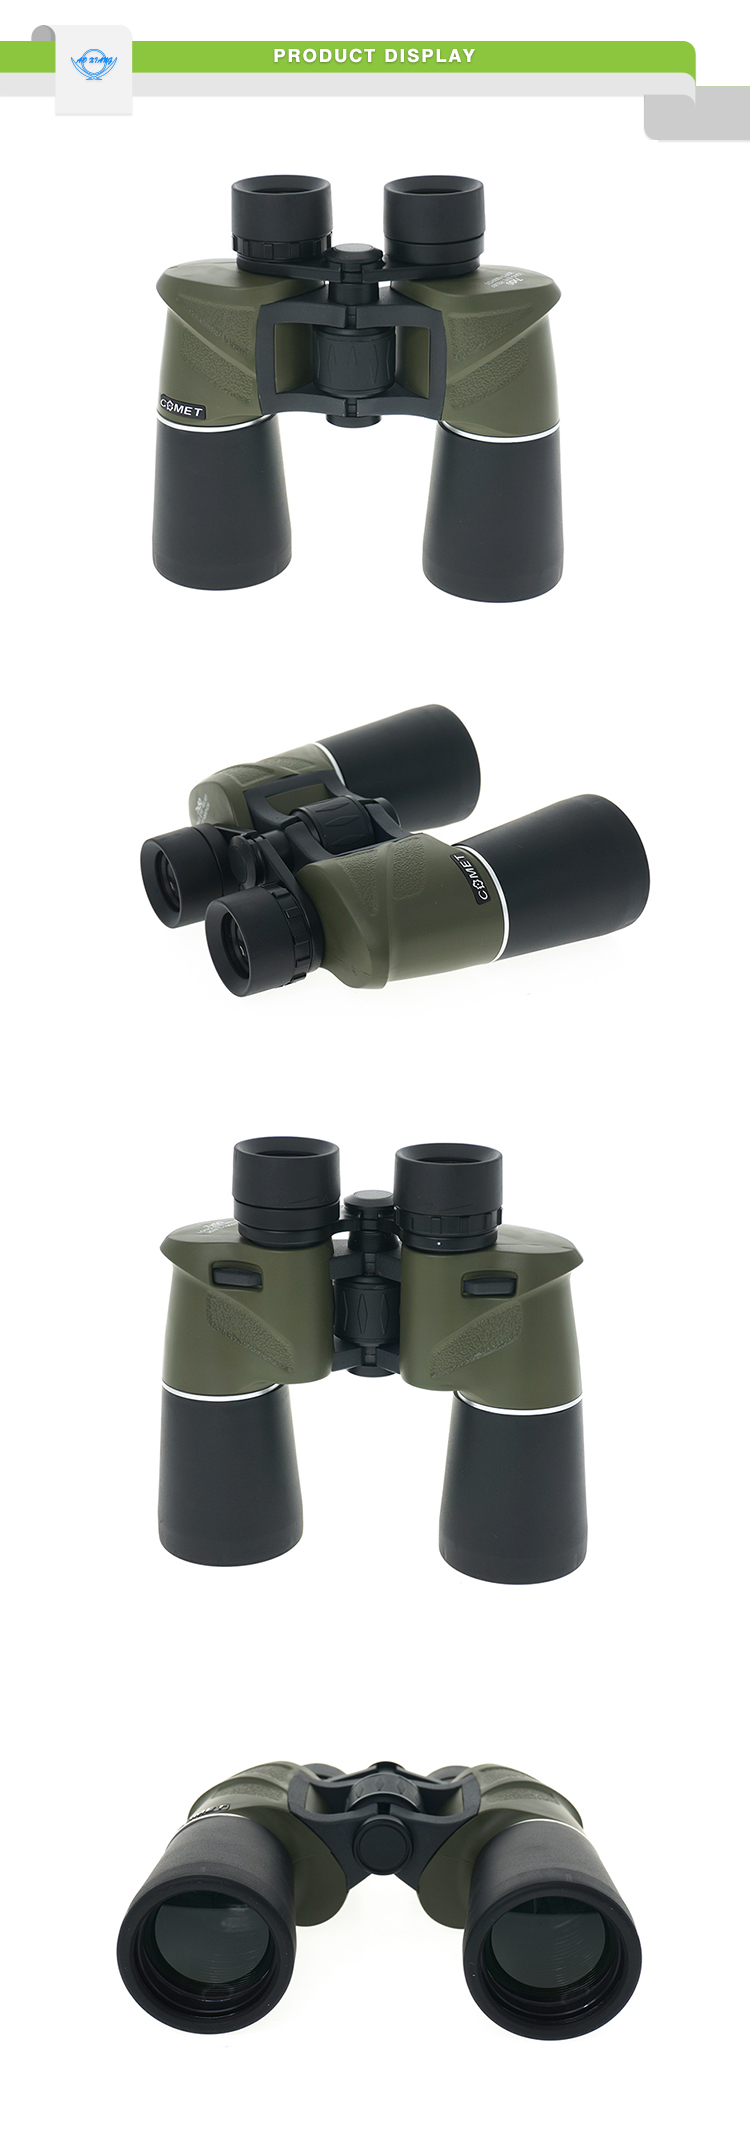 2017 Most popular 7x50 high resolution binoculars,zcf binoculars